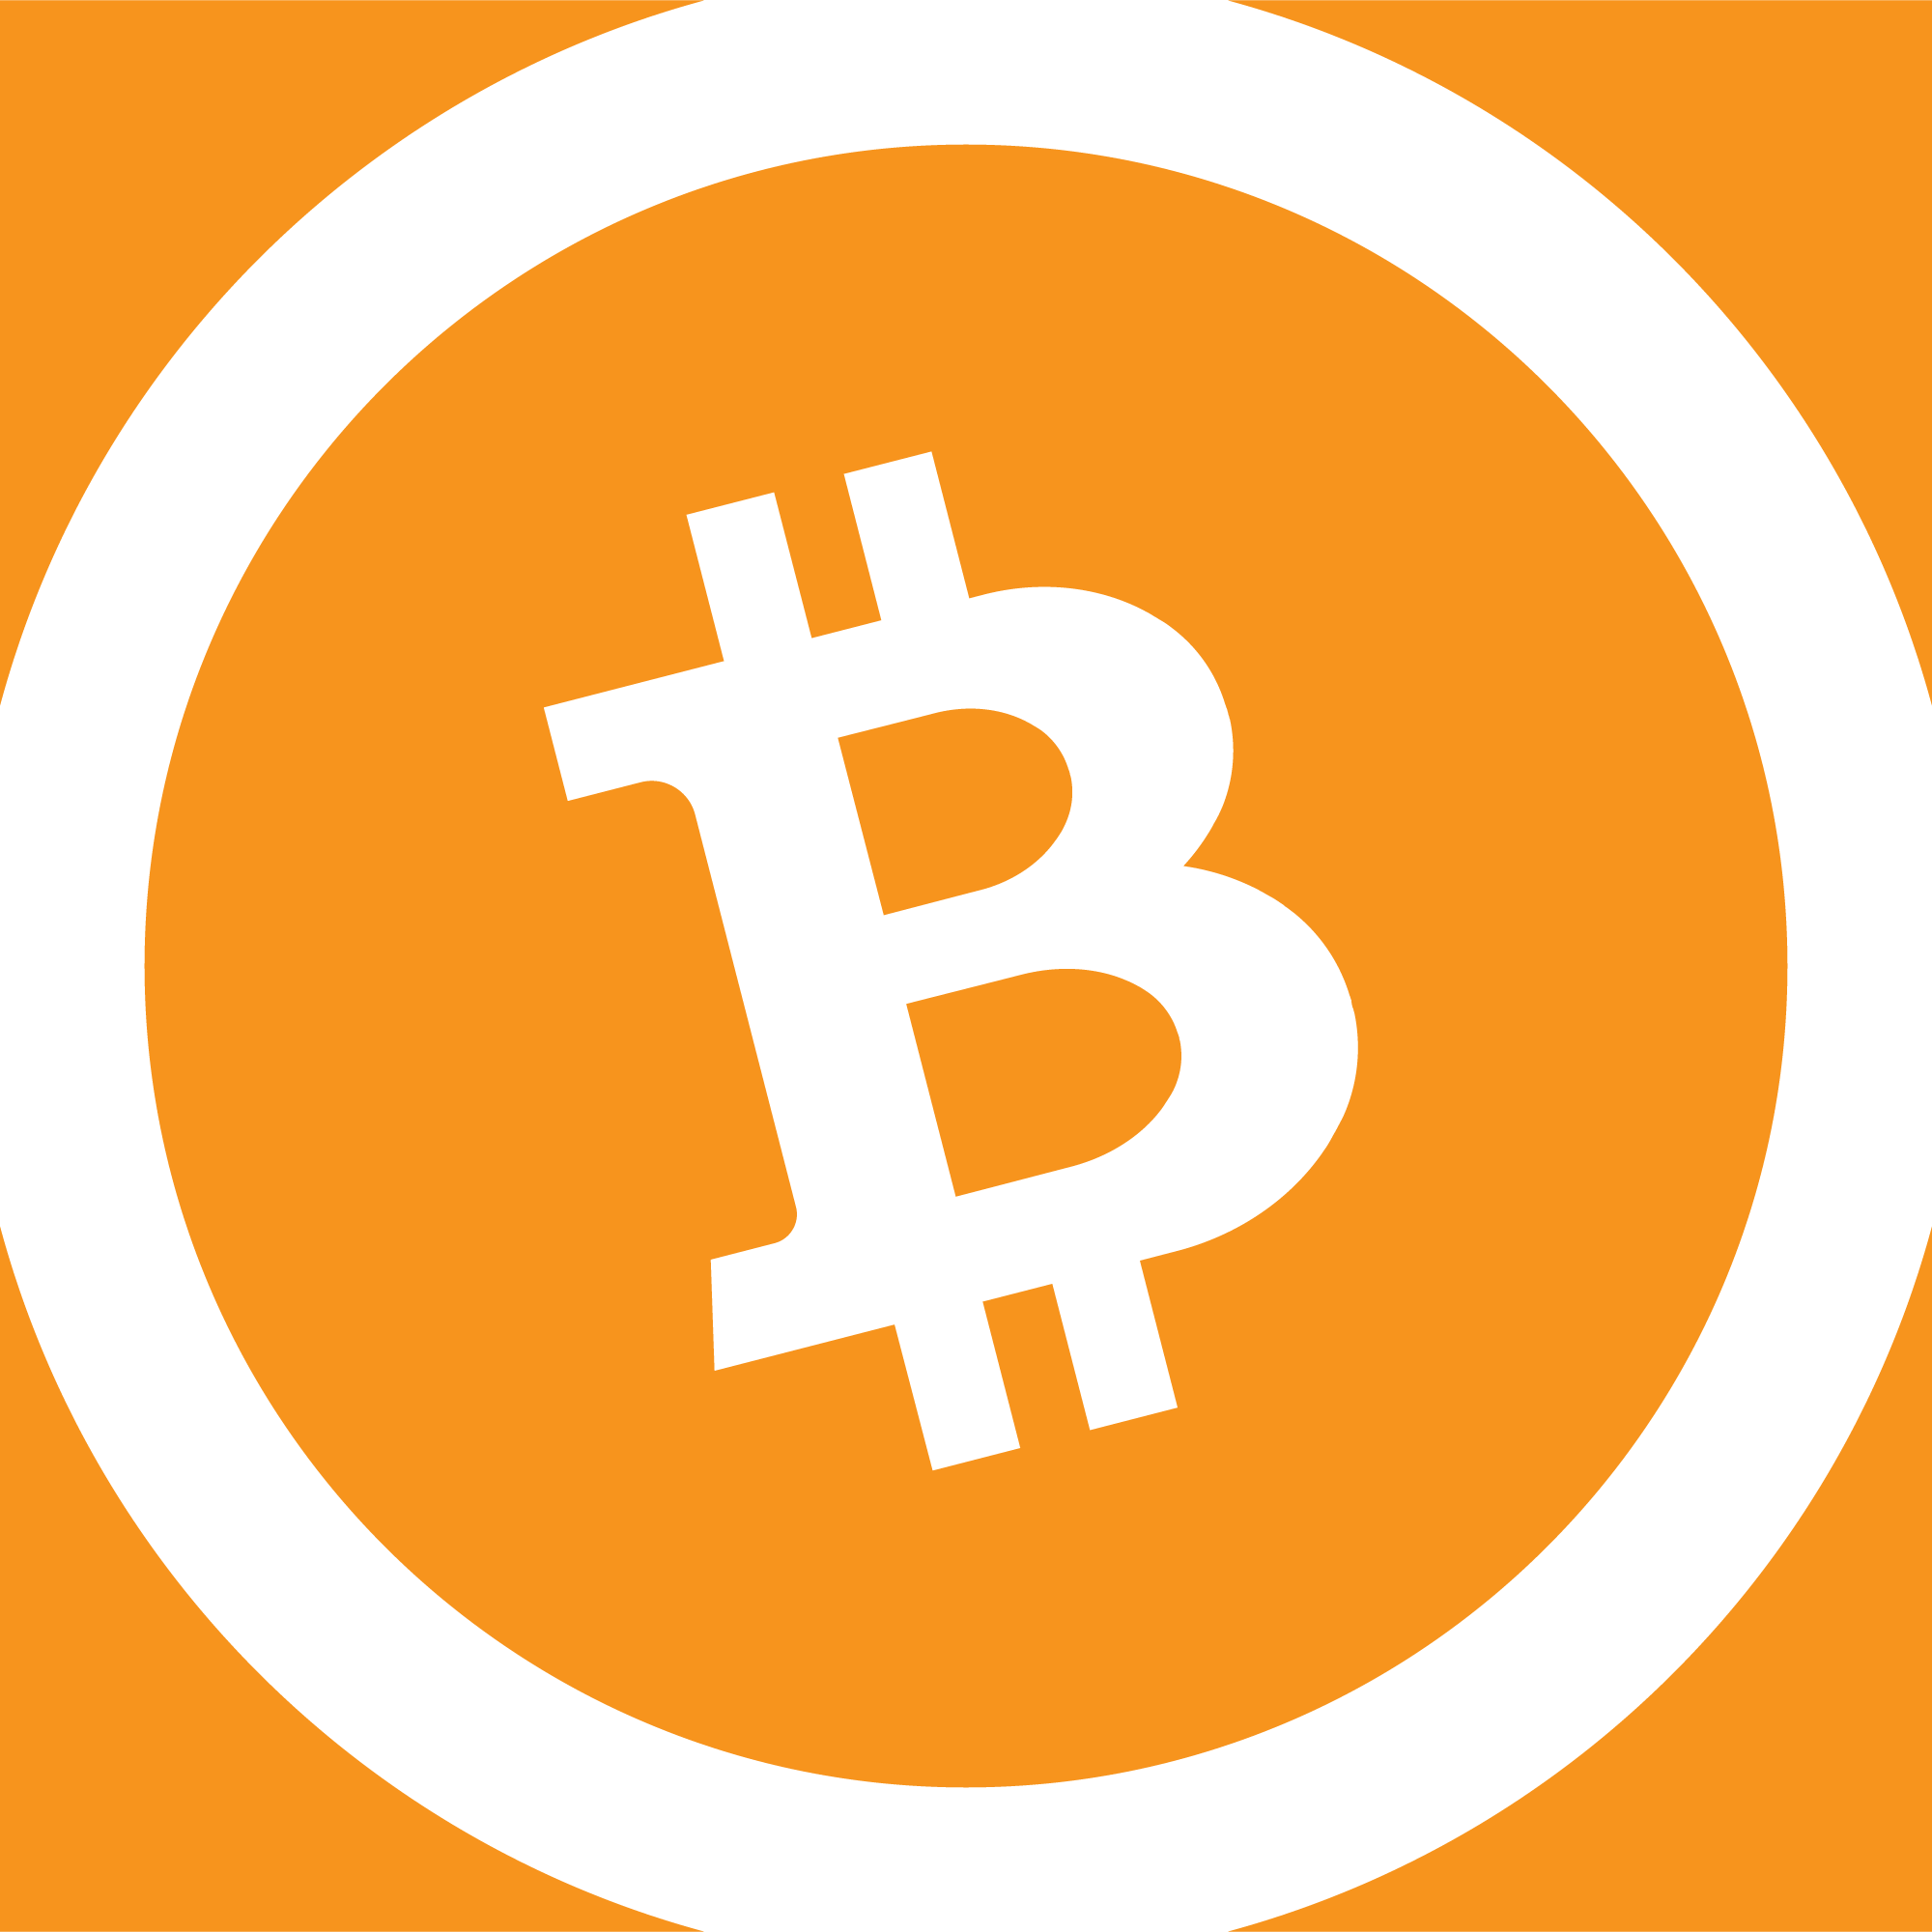 Small png images. Bitcoin cash logos graphics